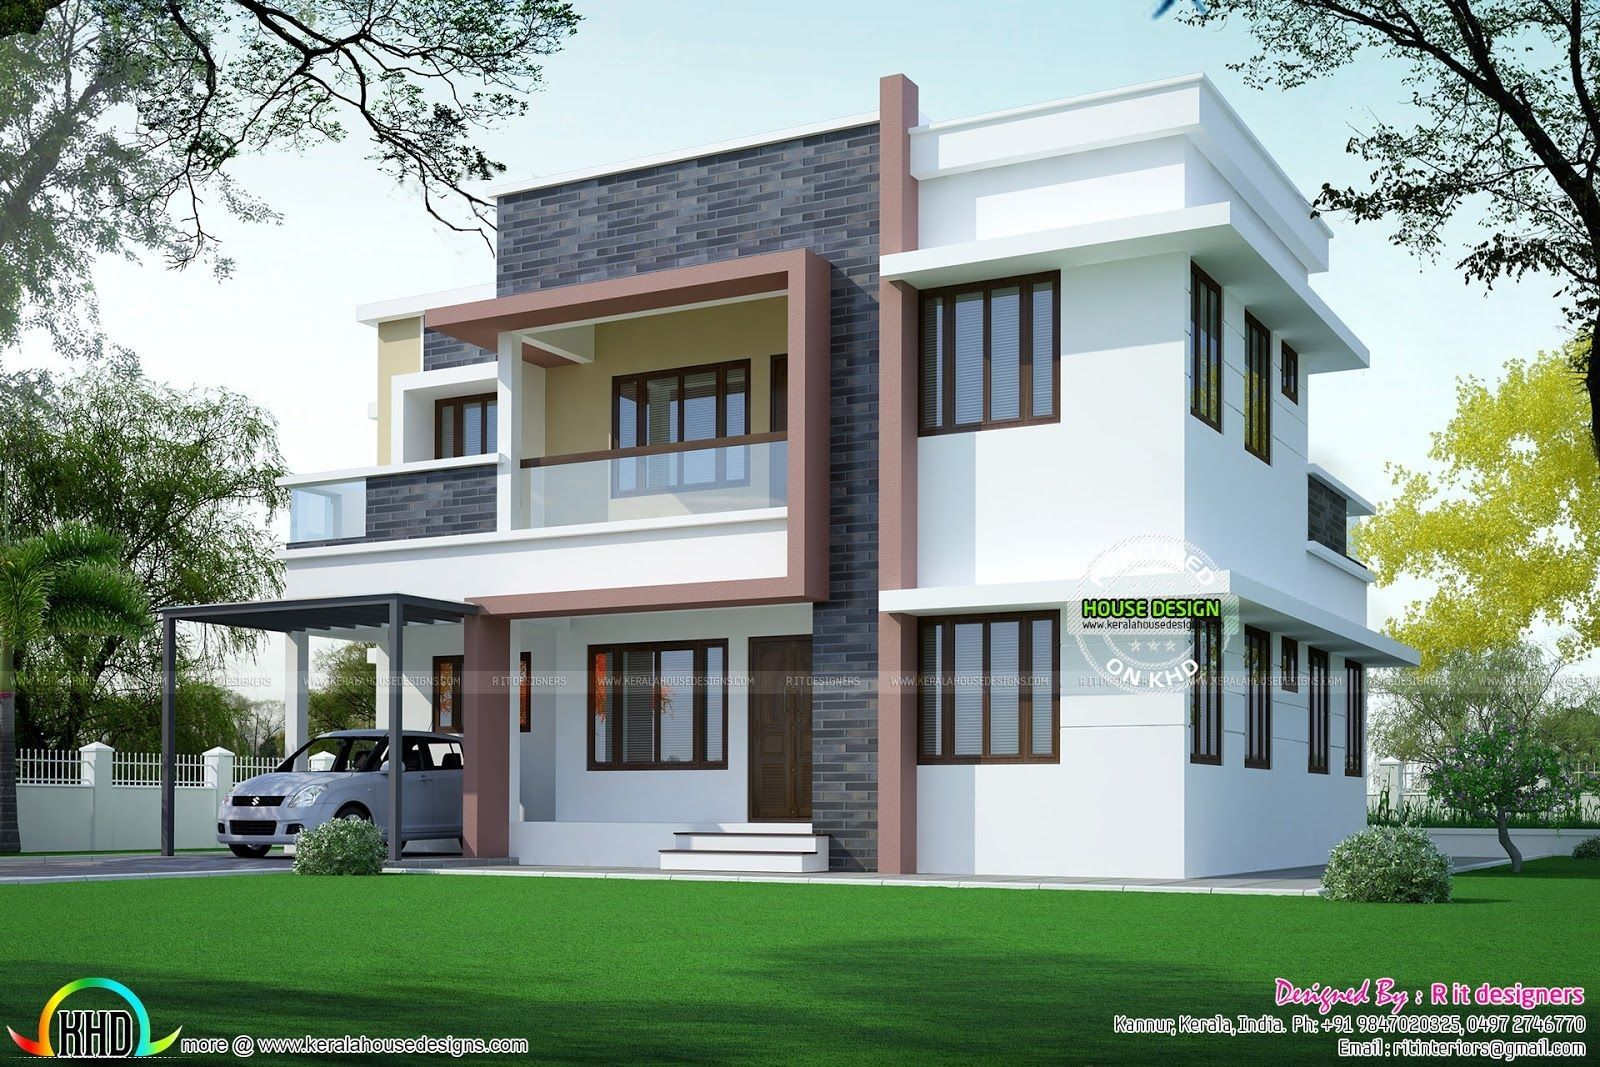 Building Plans For Homes In India Unique Icymi Design Your Own House Plan  Software Hiqra Of Building Plans For Homes In India Luxury We Are Expert In  ...